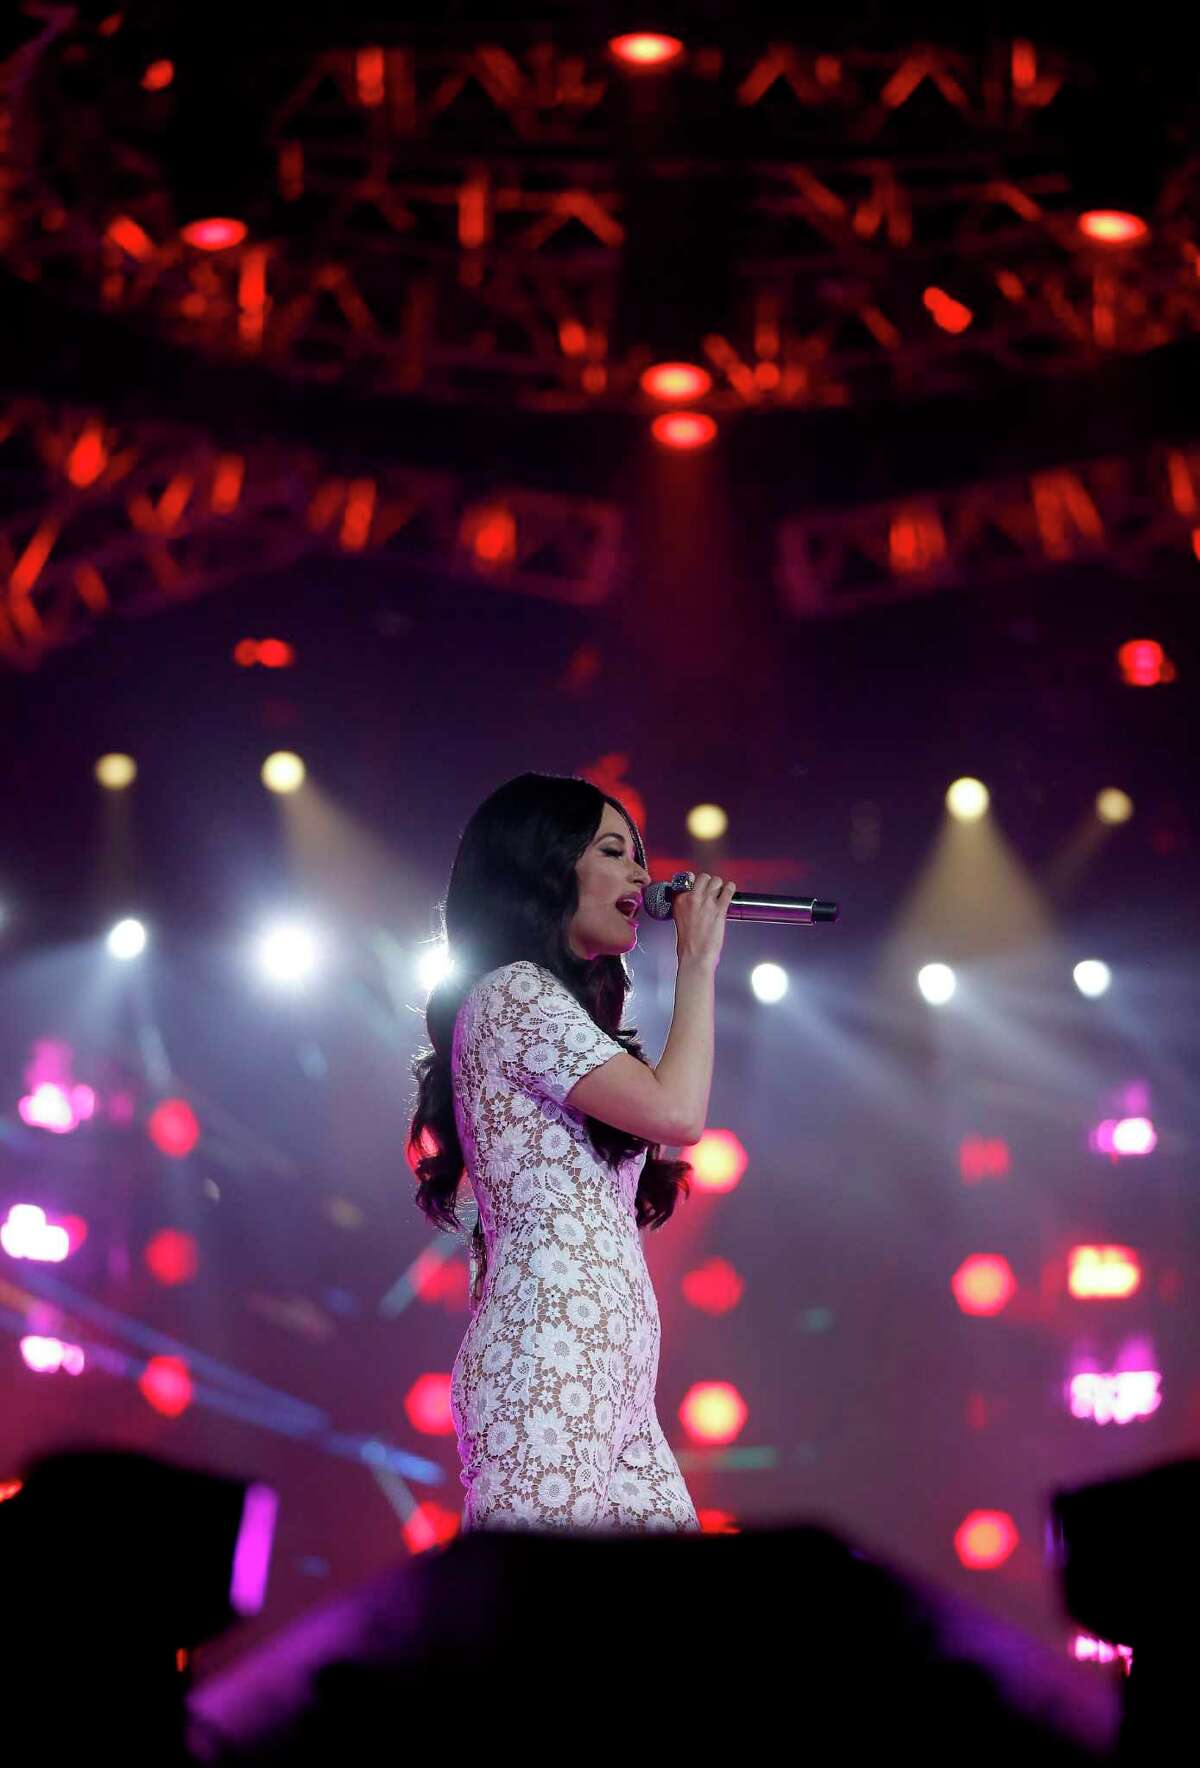 Kacey Musgraves performs during the Houston Livestock Show and Rodeo at NRG Stadium, Monday, Feb. 25, 2019, in Houston.